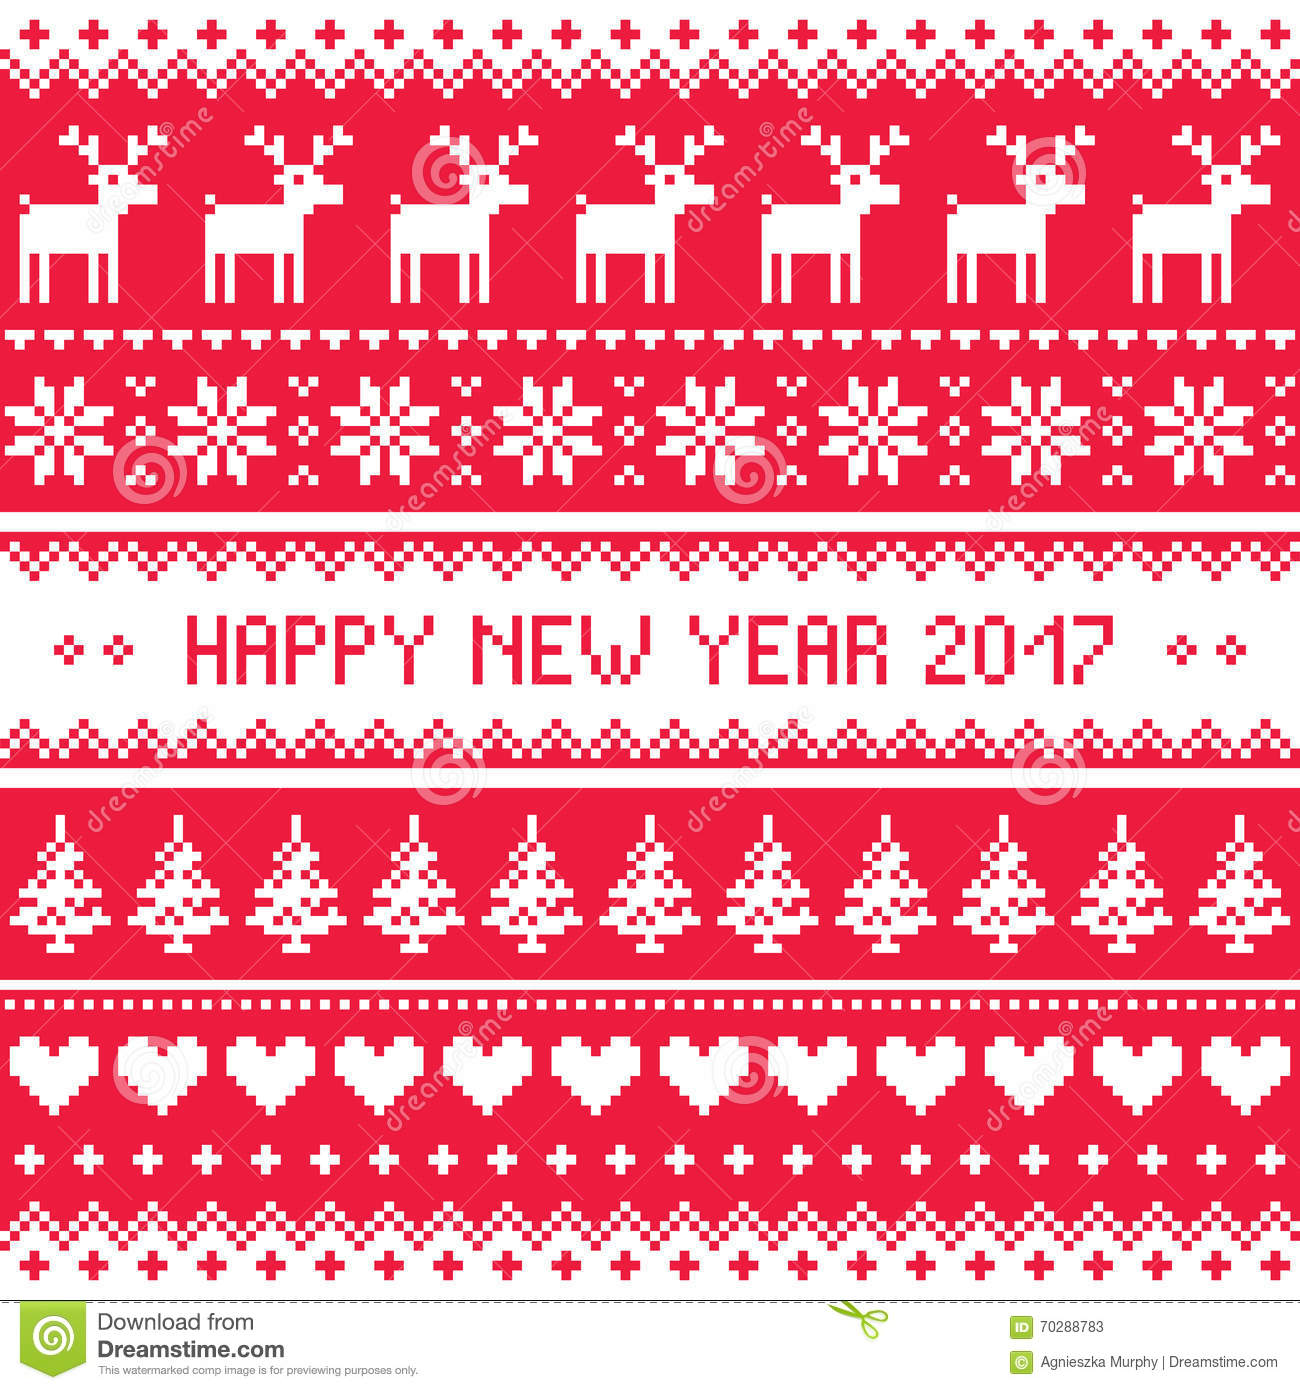 Happy New Year 2017 Scandinavian Red Embroidery Pattern